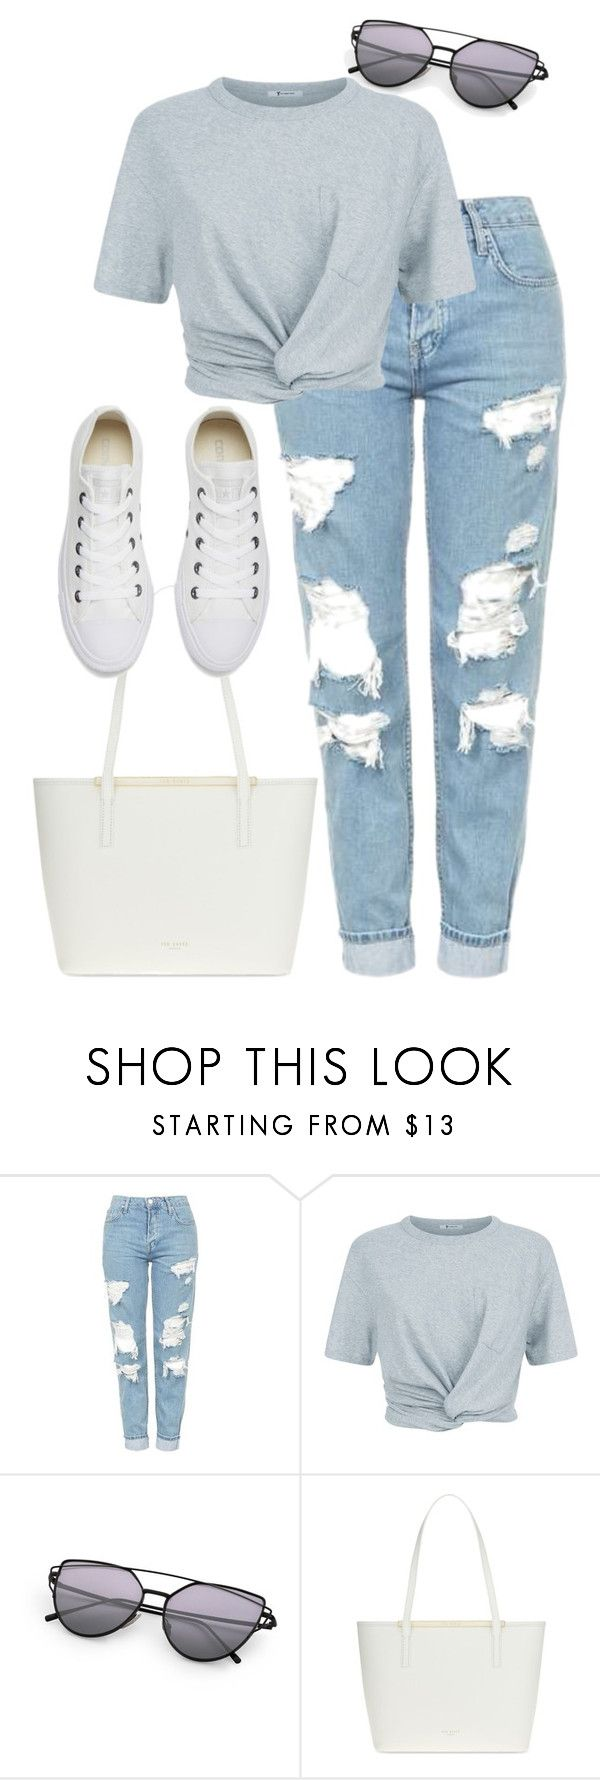 """""""Untitled #252"""" by epiphany-of-life on Polyvore featuring Topshop, T By Alexander Wang, Ted Baker and Converse"""